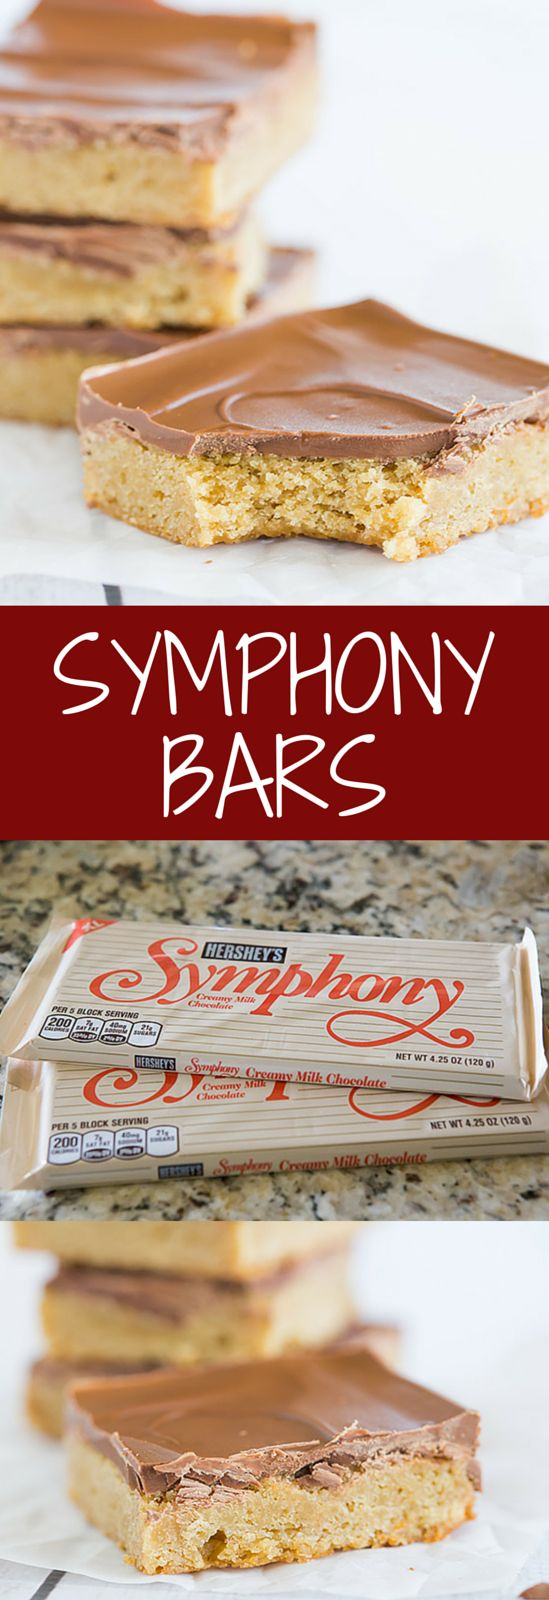 Symphony Bars - I revamped this recipe to use a stripped-down version of my favorite blondies as the base, then topped with broken-up Symphony chocolate bars and spread until they melt!